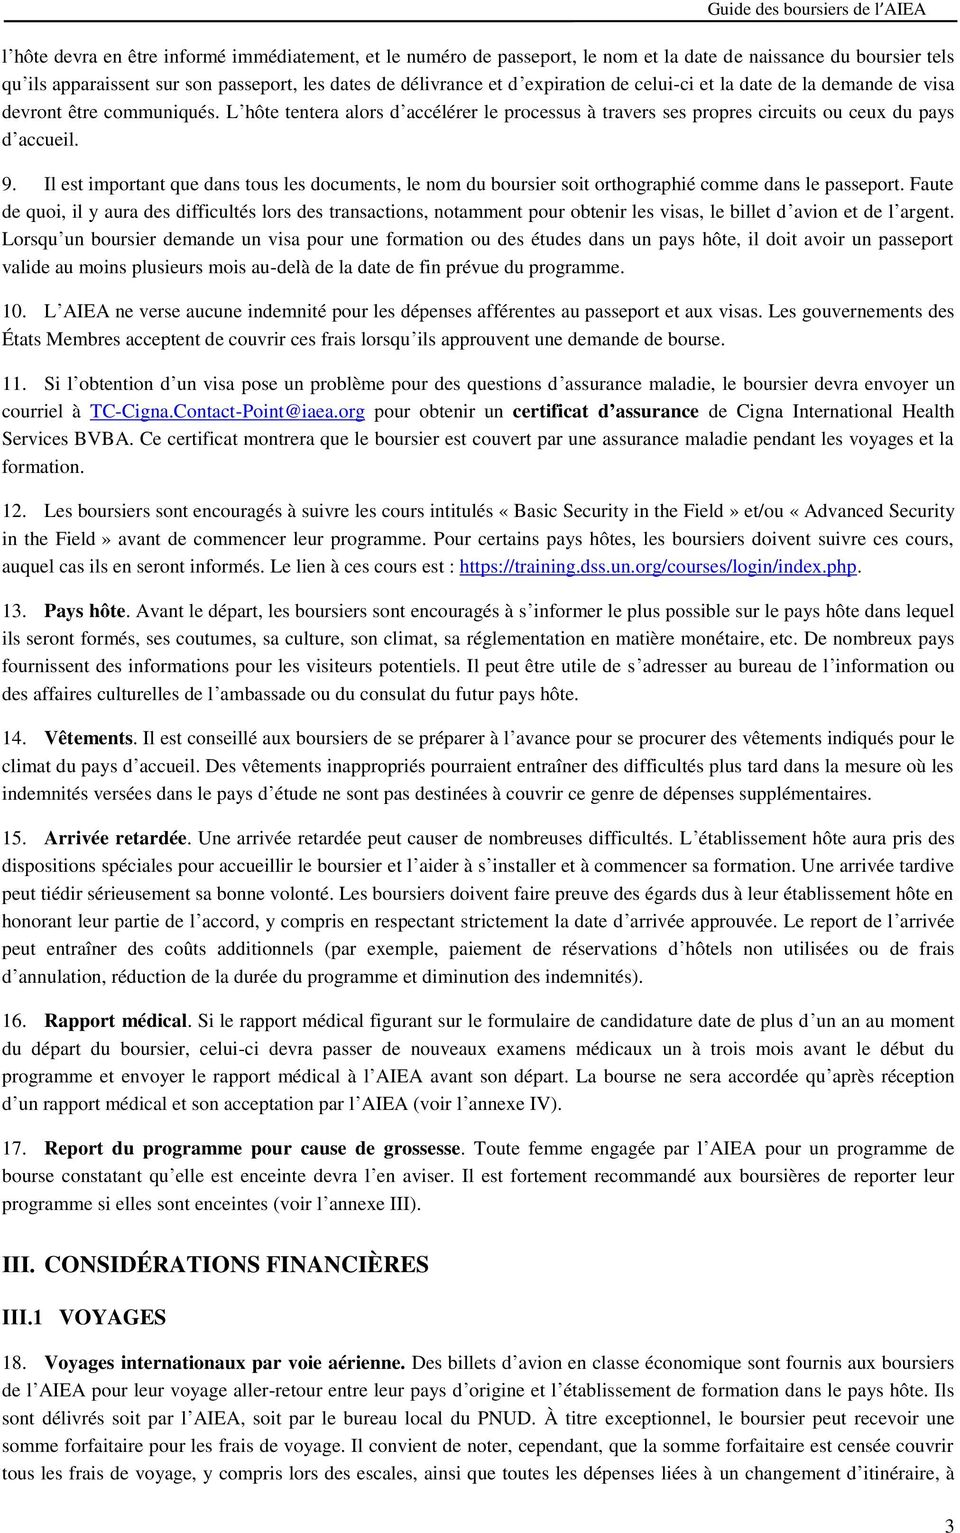 Il et important que dan tou le document, le nom du bourier oit orthographié comme dan le paeport.